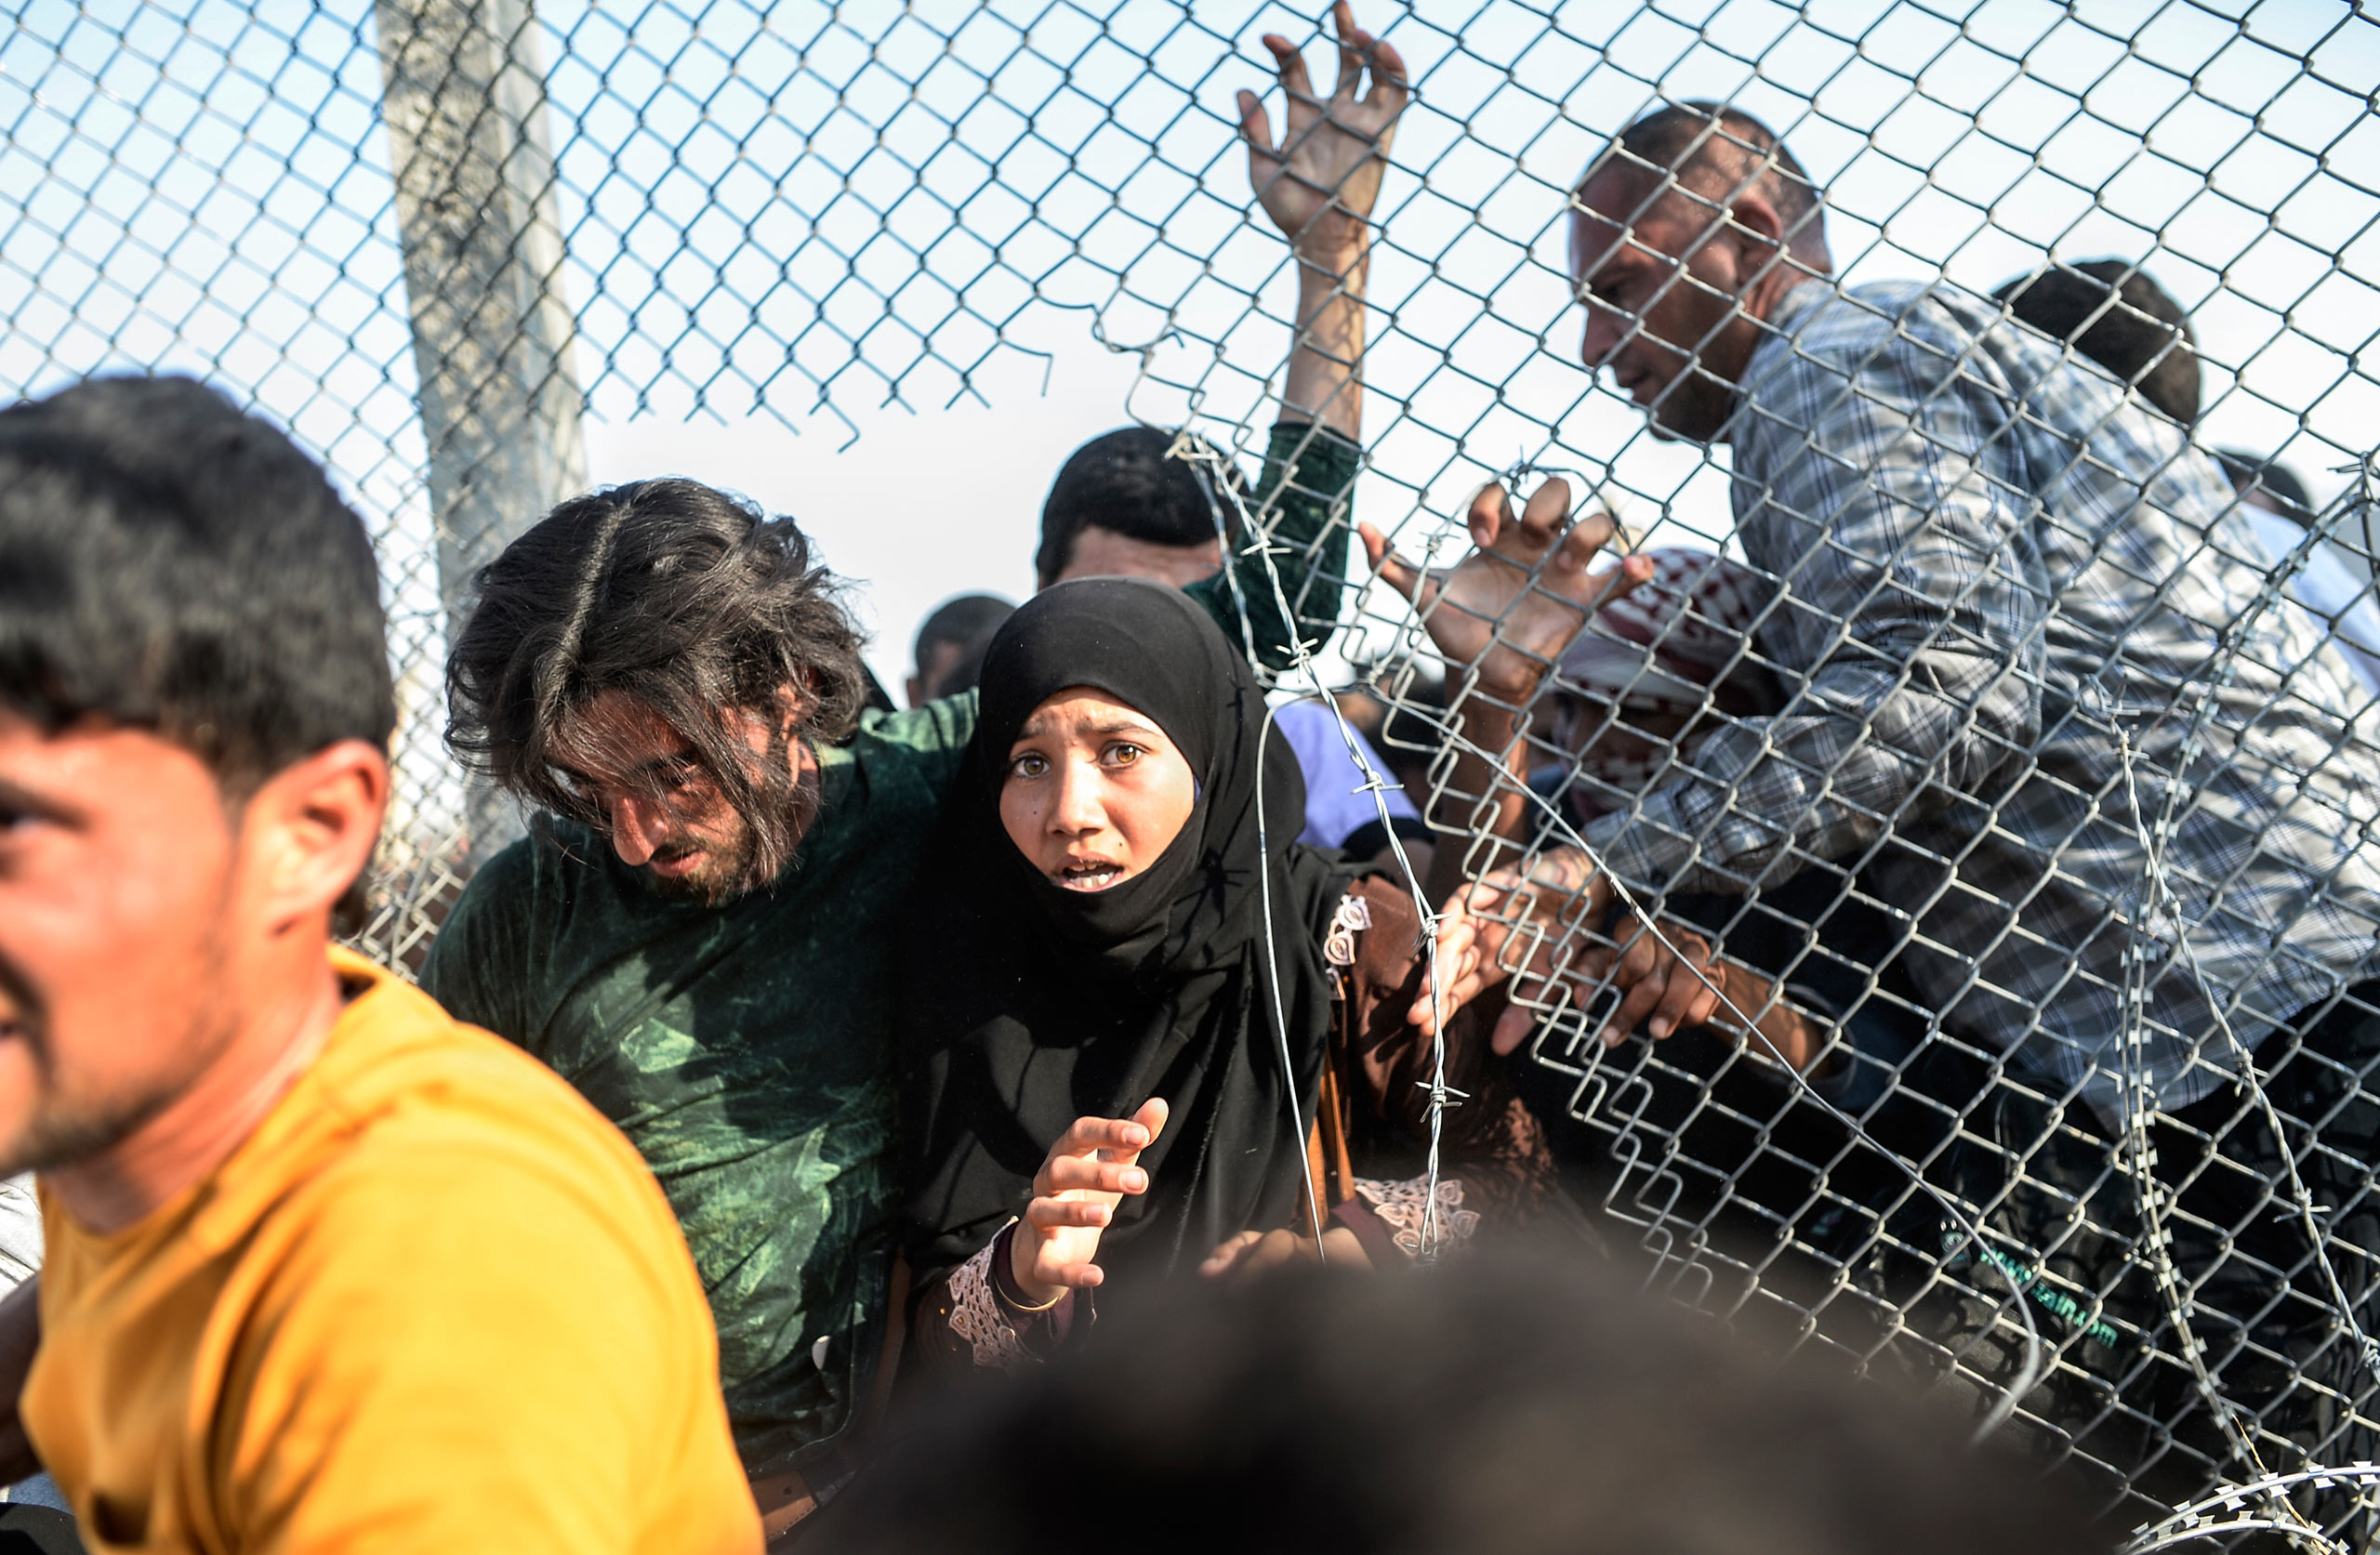 Thousands of Syrians break through the torn wired fences, crossing illegally from Tell Abyad into the Turkish territory in Akçakale, in the Şanlıurfa province. June 14, 2015.